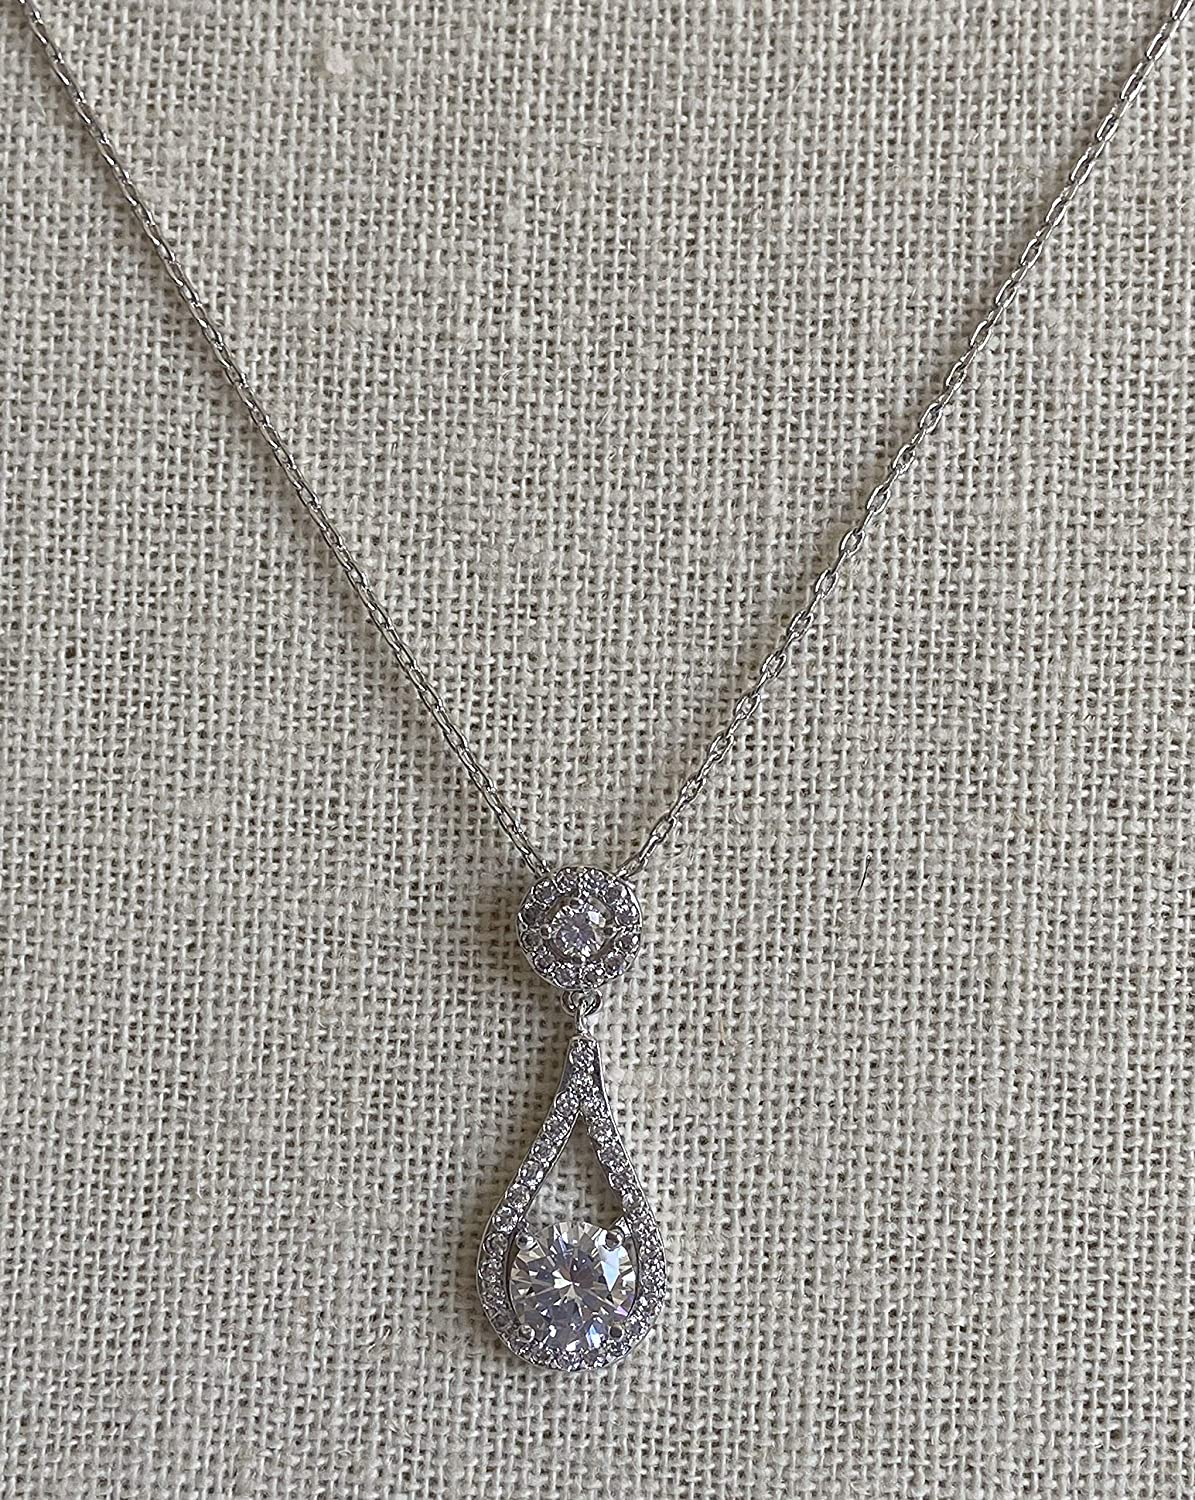 Custom Bridesmaid Necklace with personalized message Bridesmaids Proposals with Cubic Zirconia Jewelry in gift boxes